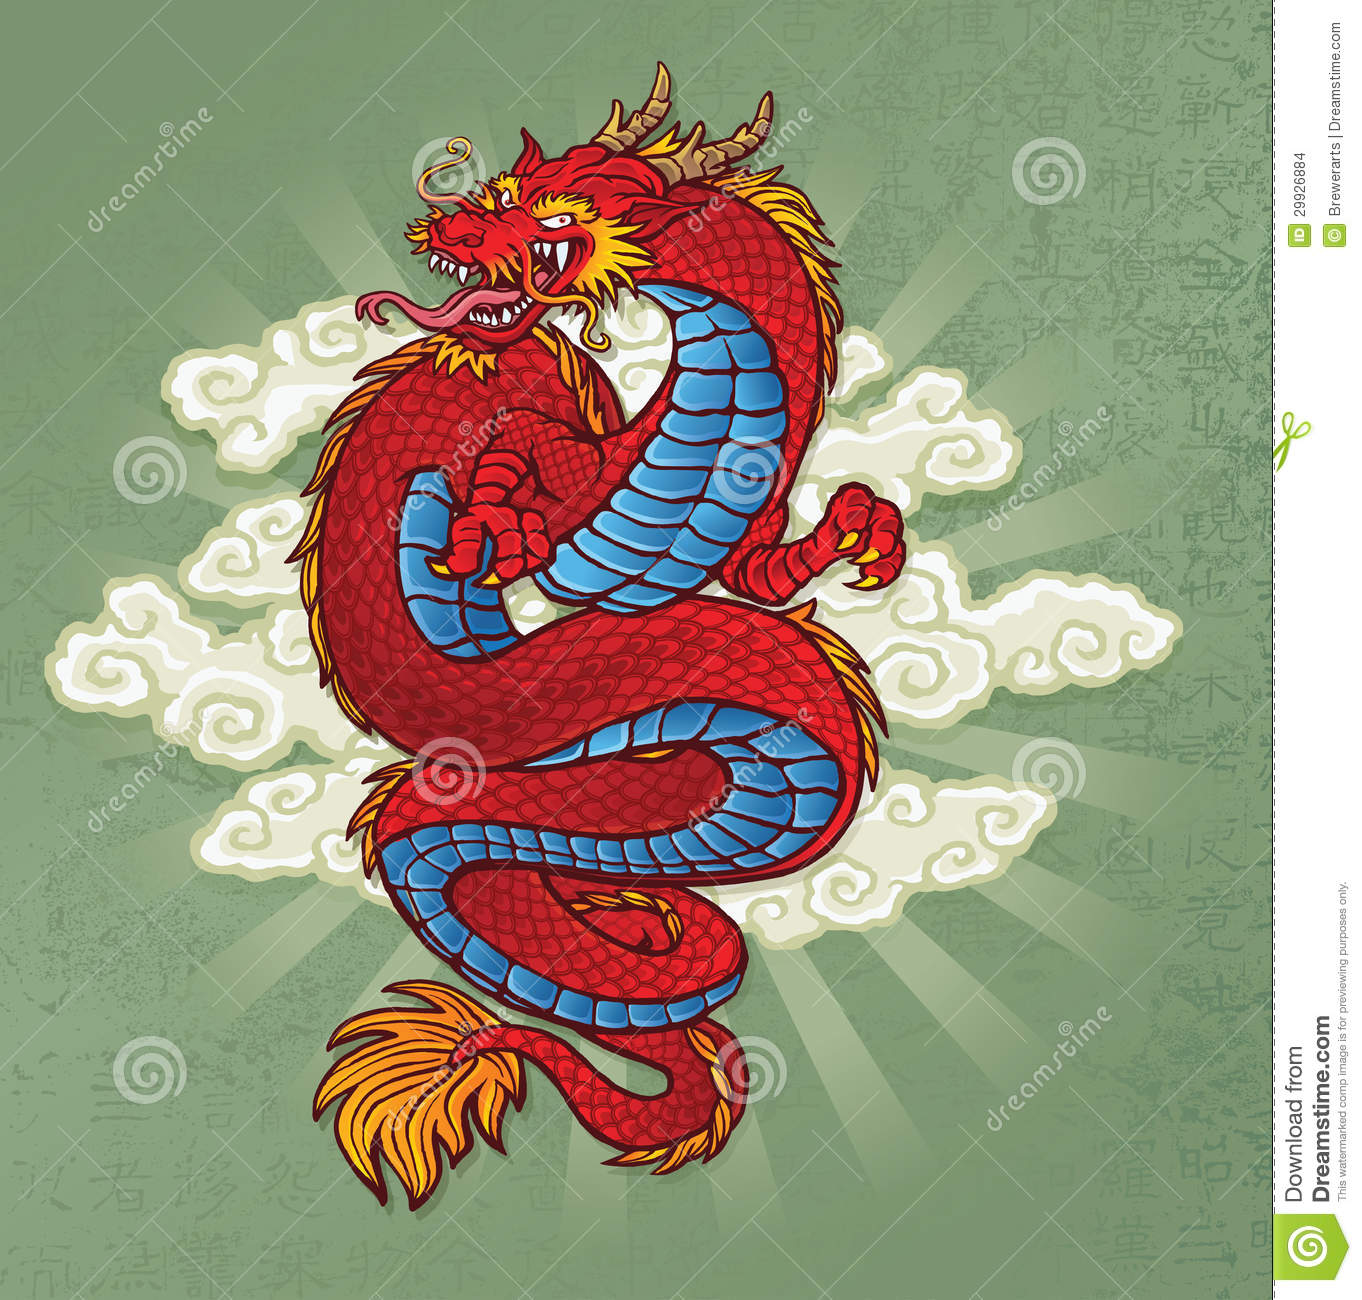 Red Chinese Dragon Tattoo On Green Stock Images - Image: 29926884